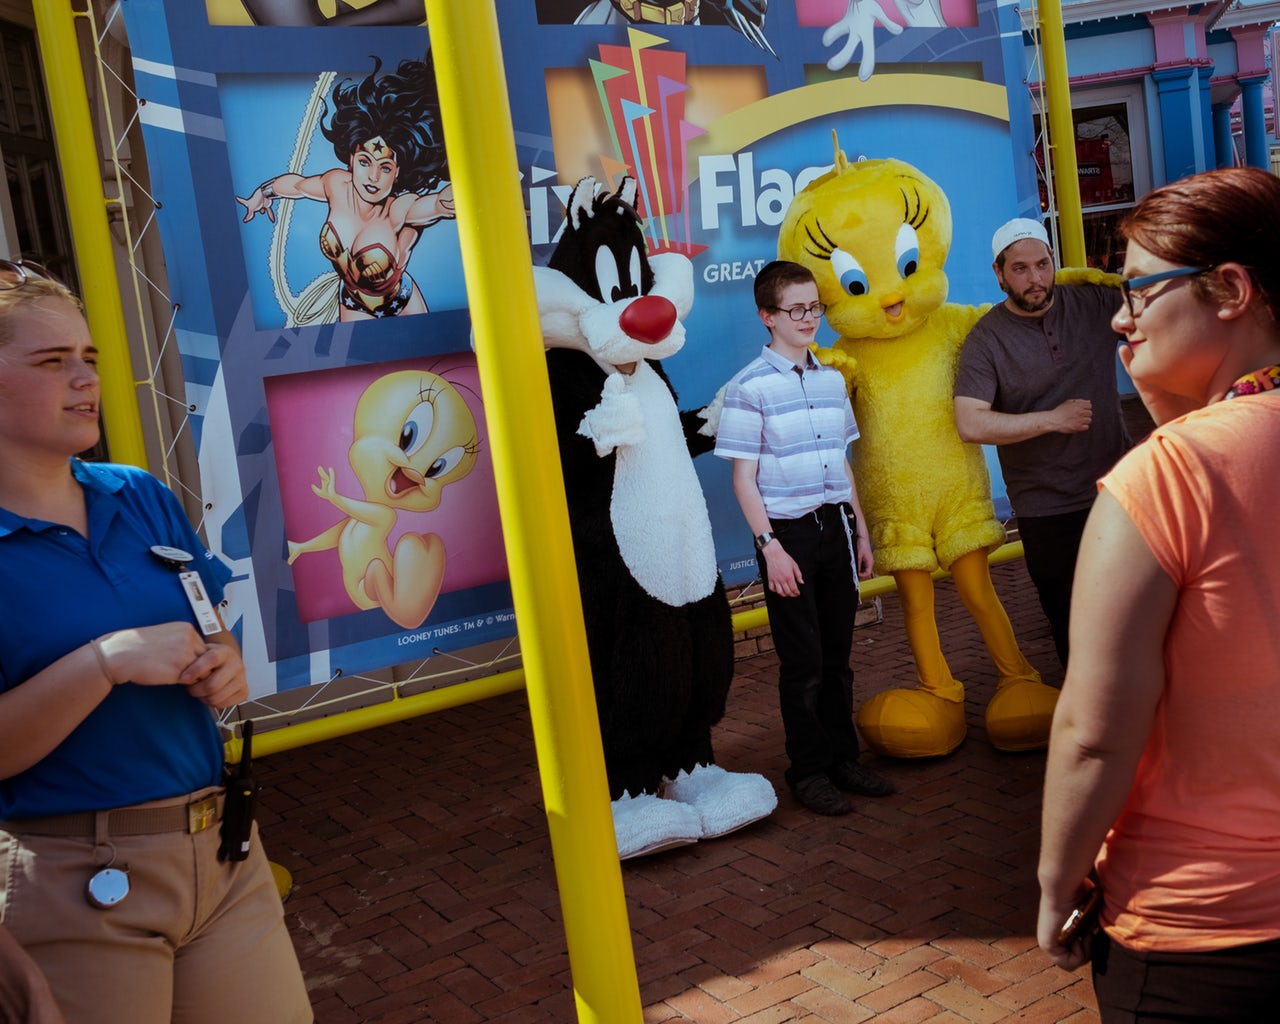 A boy and a young man pose for a photo together with Looney Tunes characters Sylvester the cat and Tweety Bird.